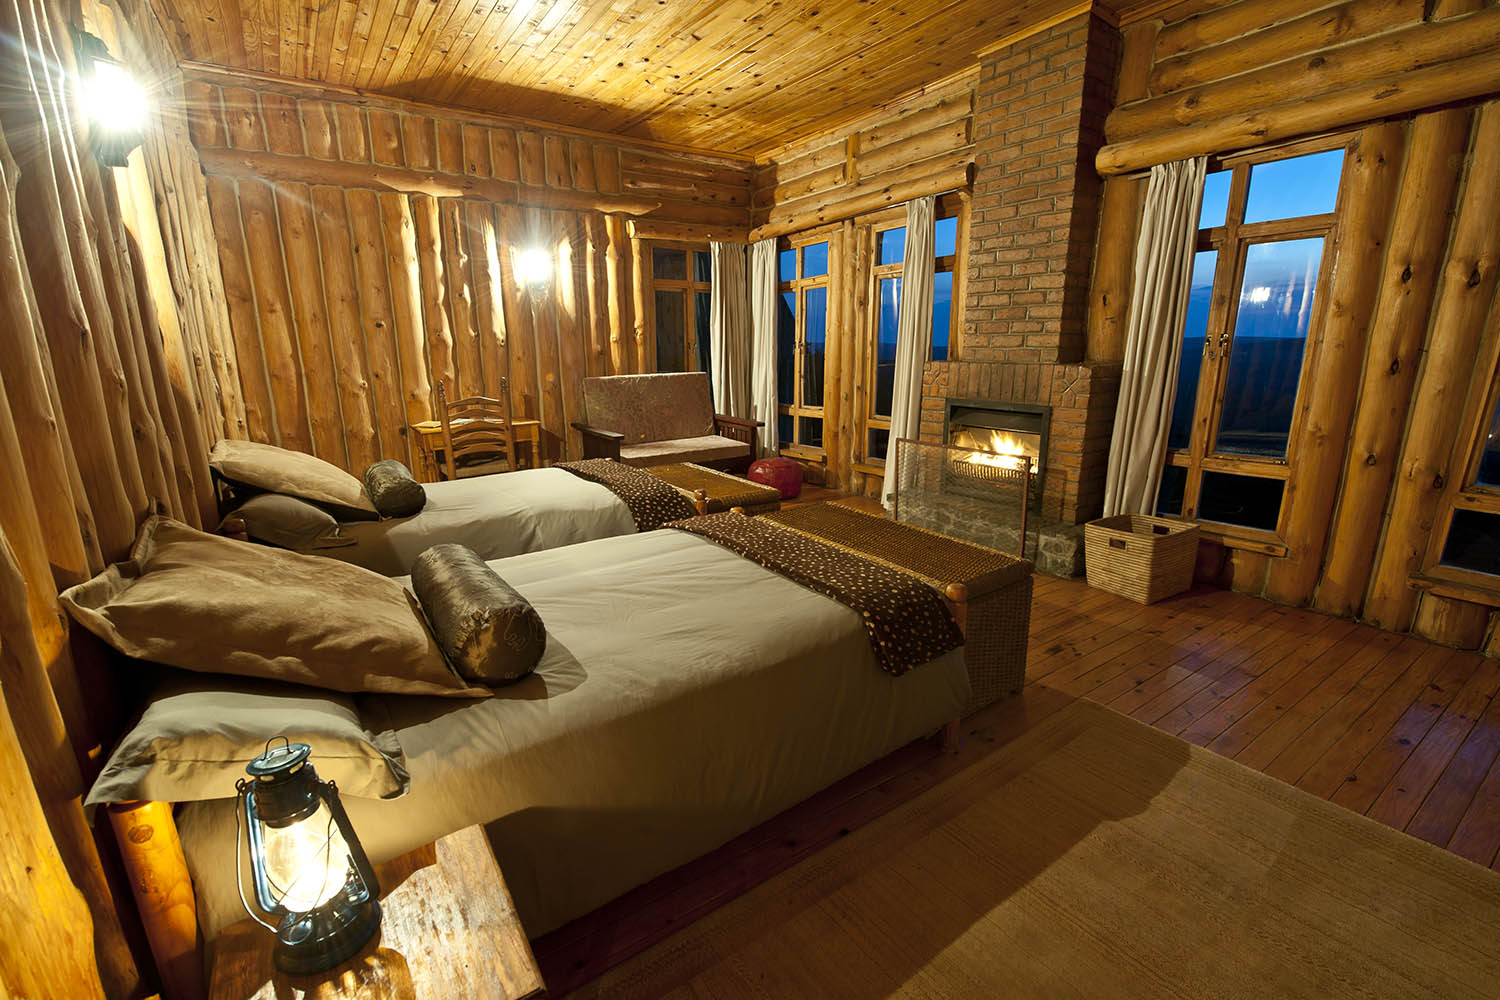 northern-adventurer-11-nights-active-holidays-tours-malawian-style-malawi-adventures-experiences-specialist-tour-operator-makuzi-beach-lodge-chintheche-room